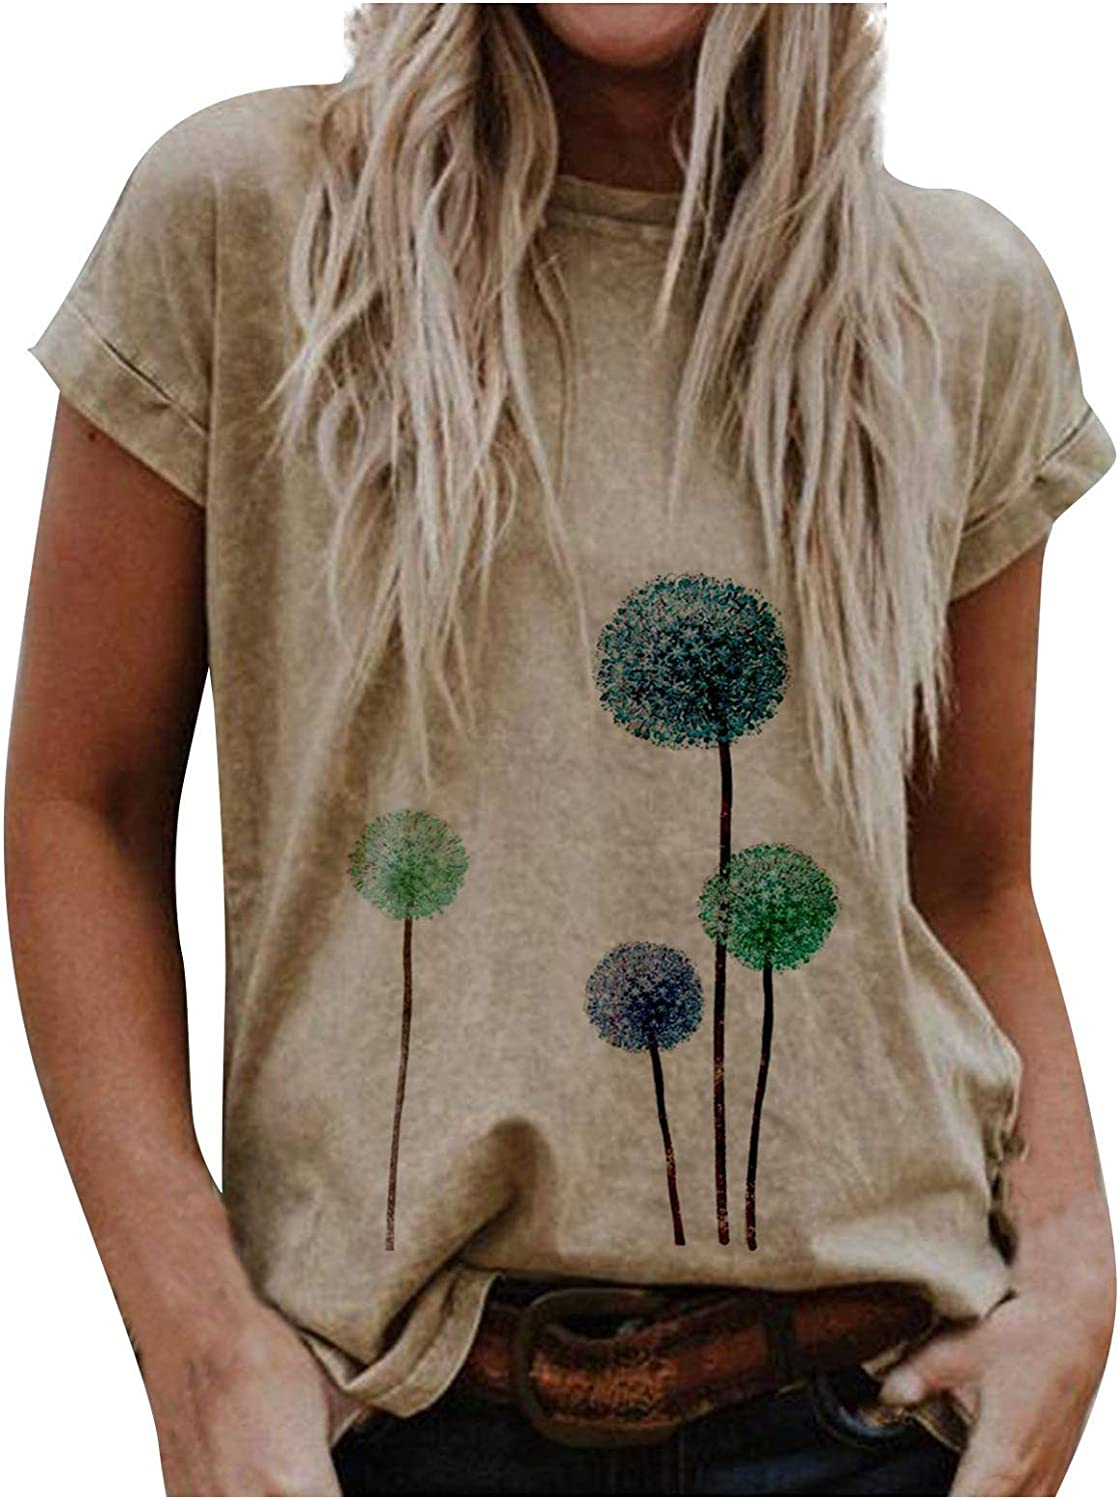 POTO Short Sleeve Tops for Womens,Short Sleeve Crewneck Shirts Casual Summer Dandelion Loose fit Tee T-Shirt Blouses